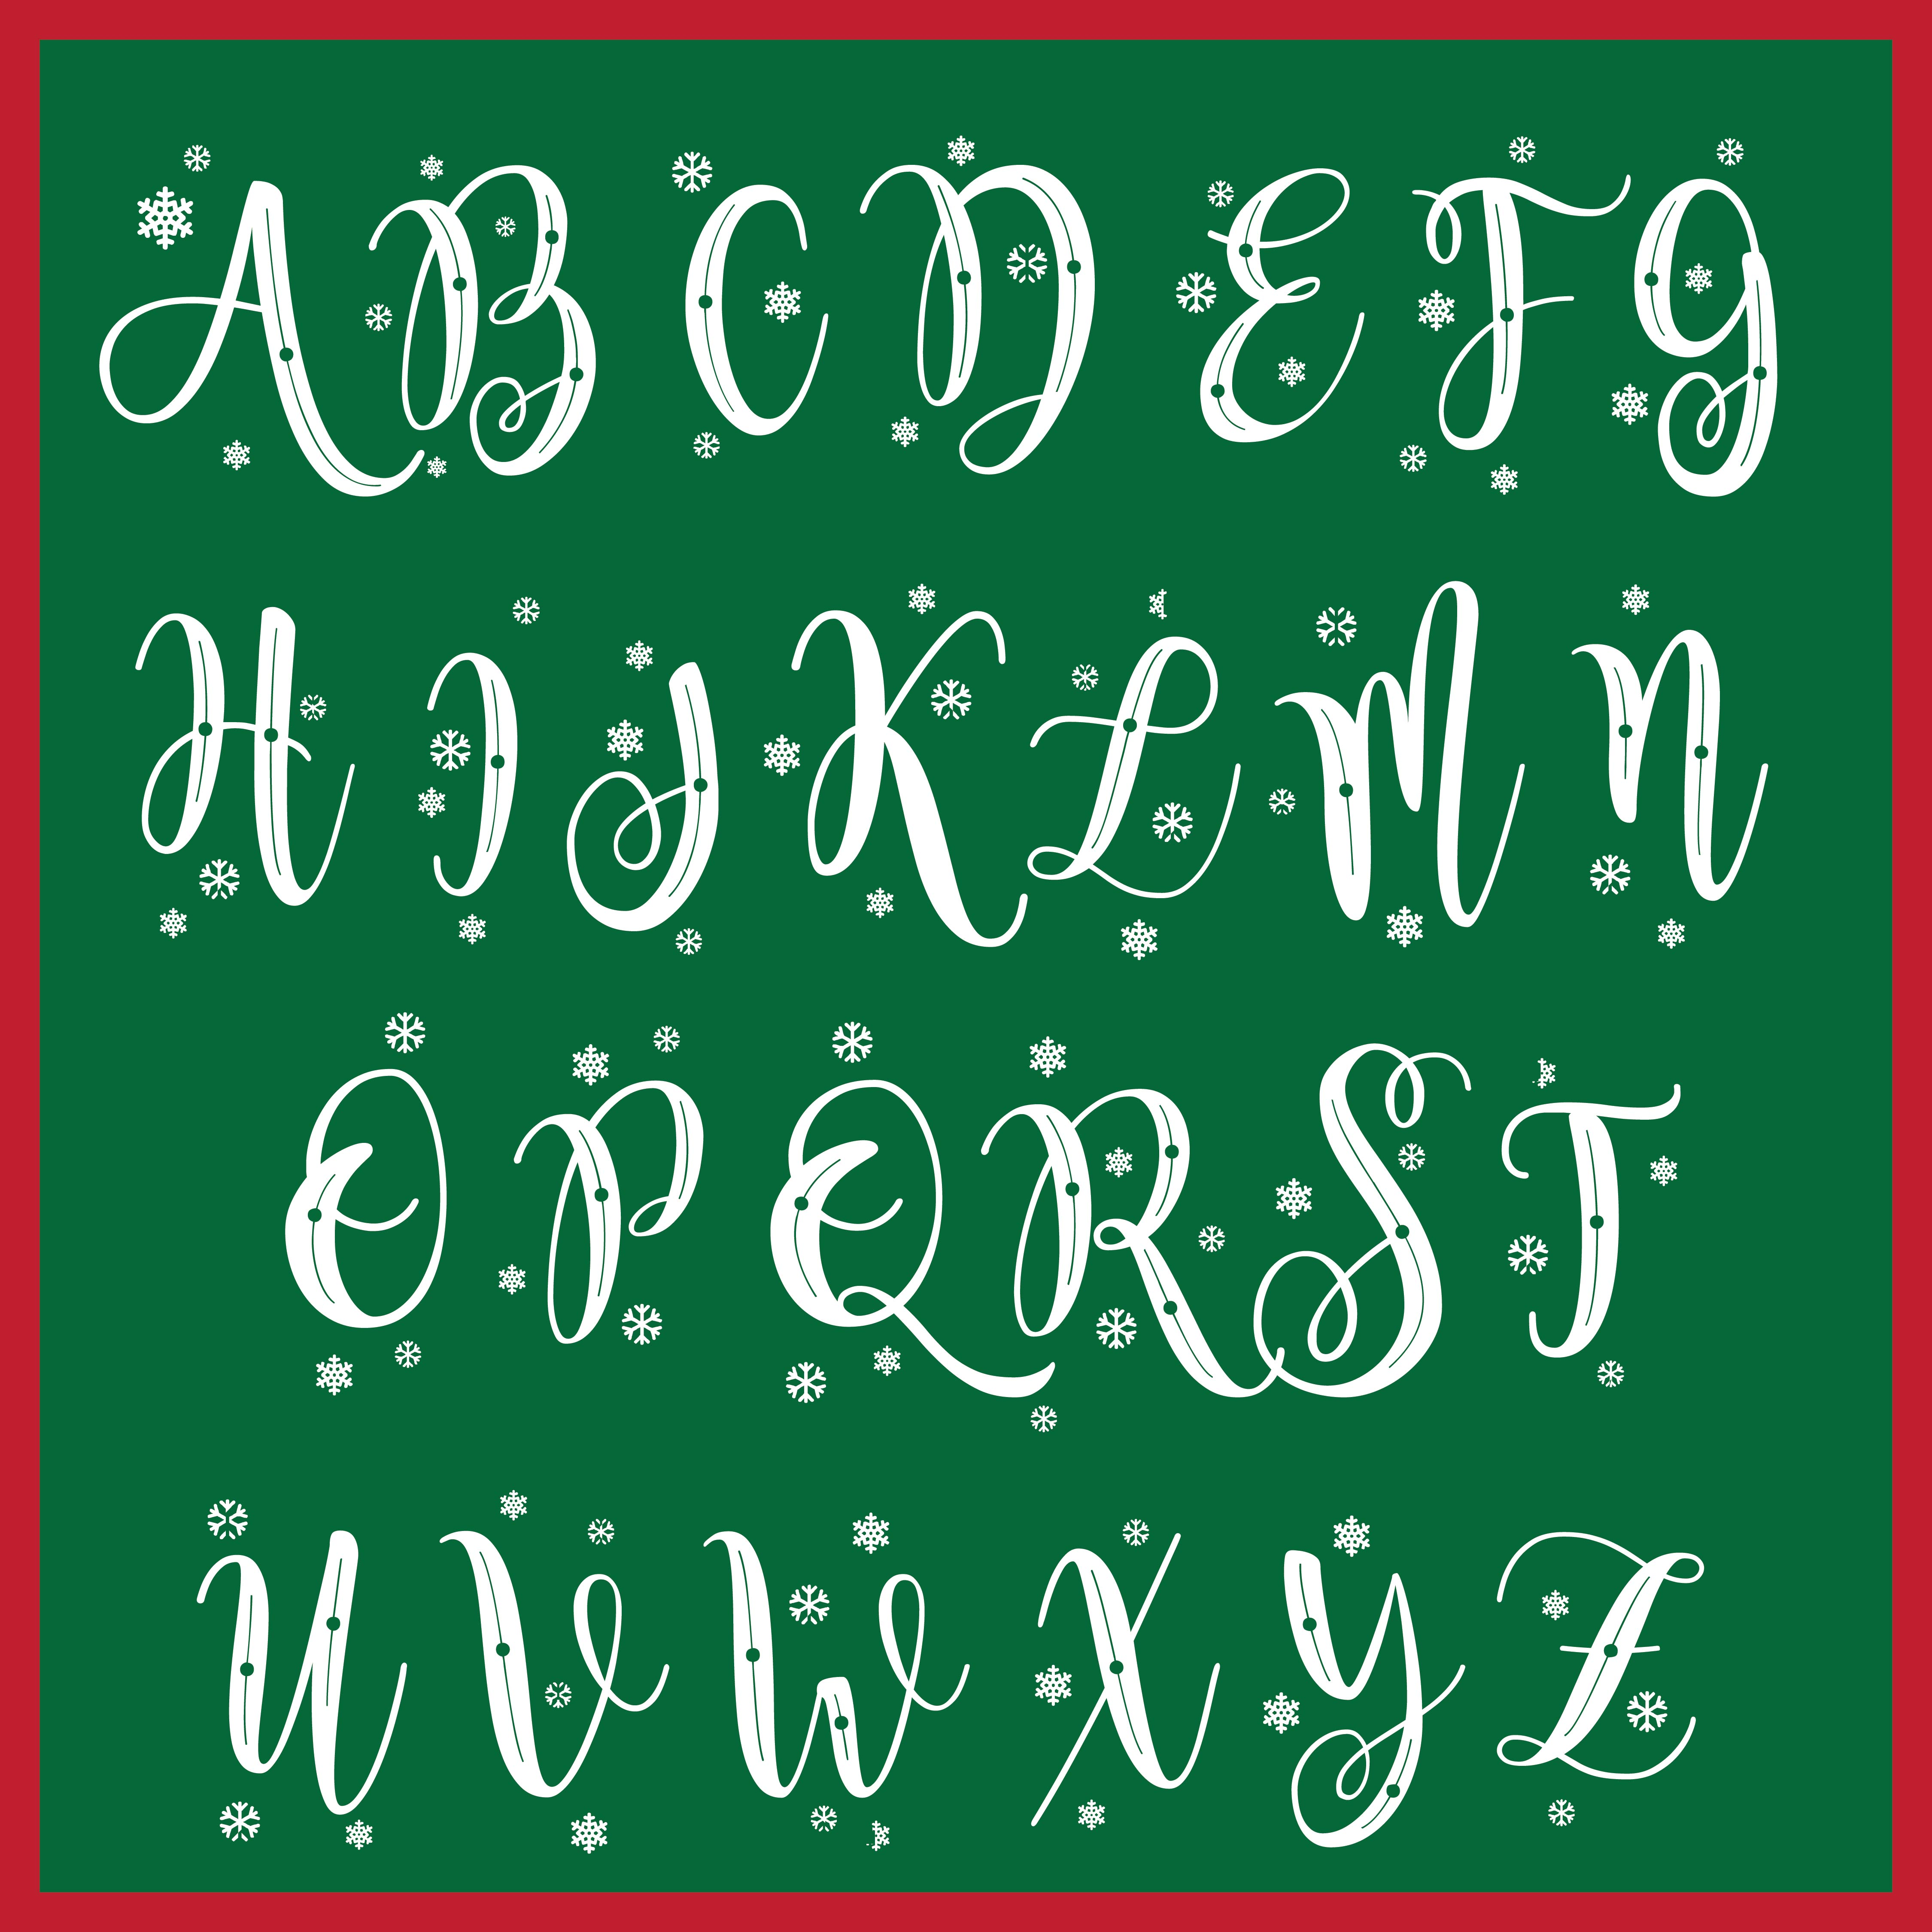 9 Images of Free Christmas Printable Chalkboard Letters